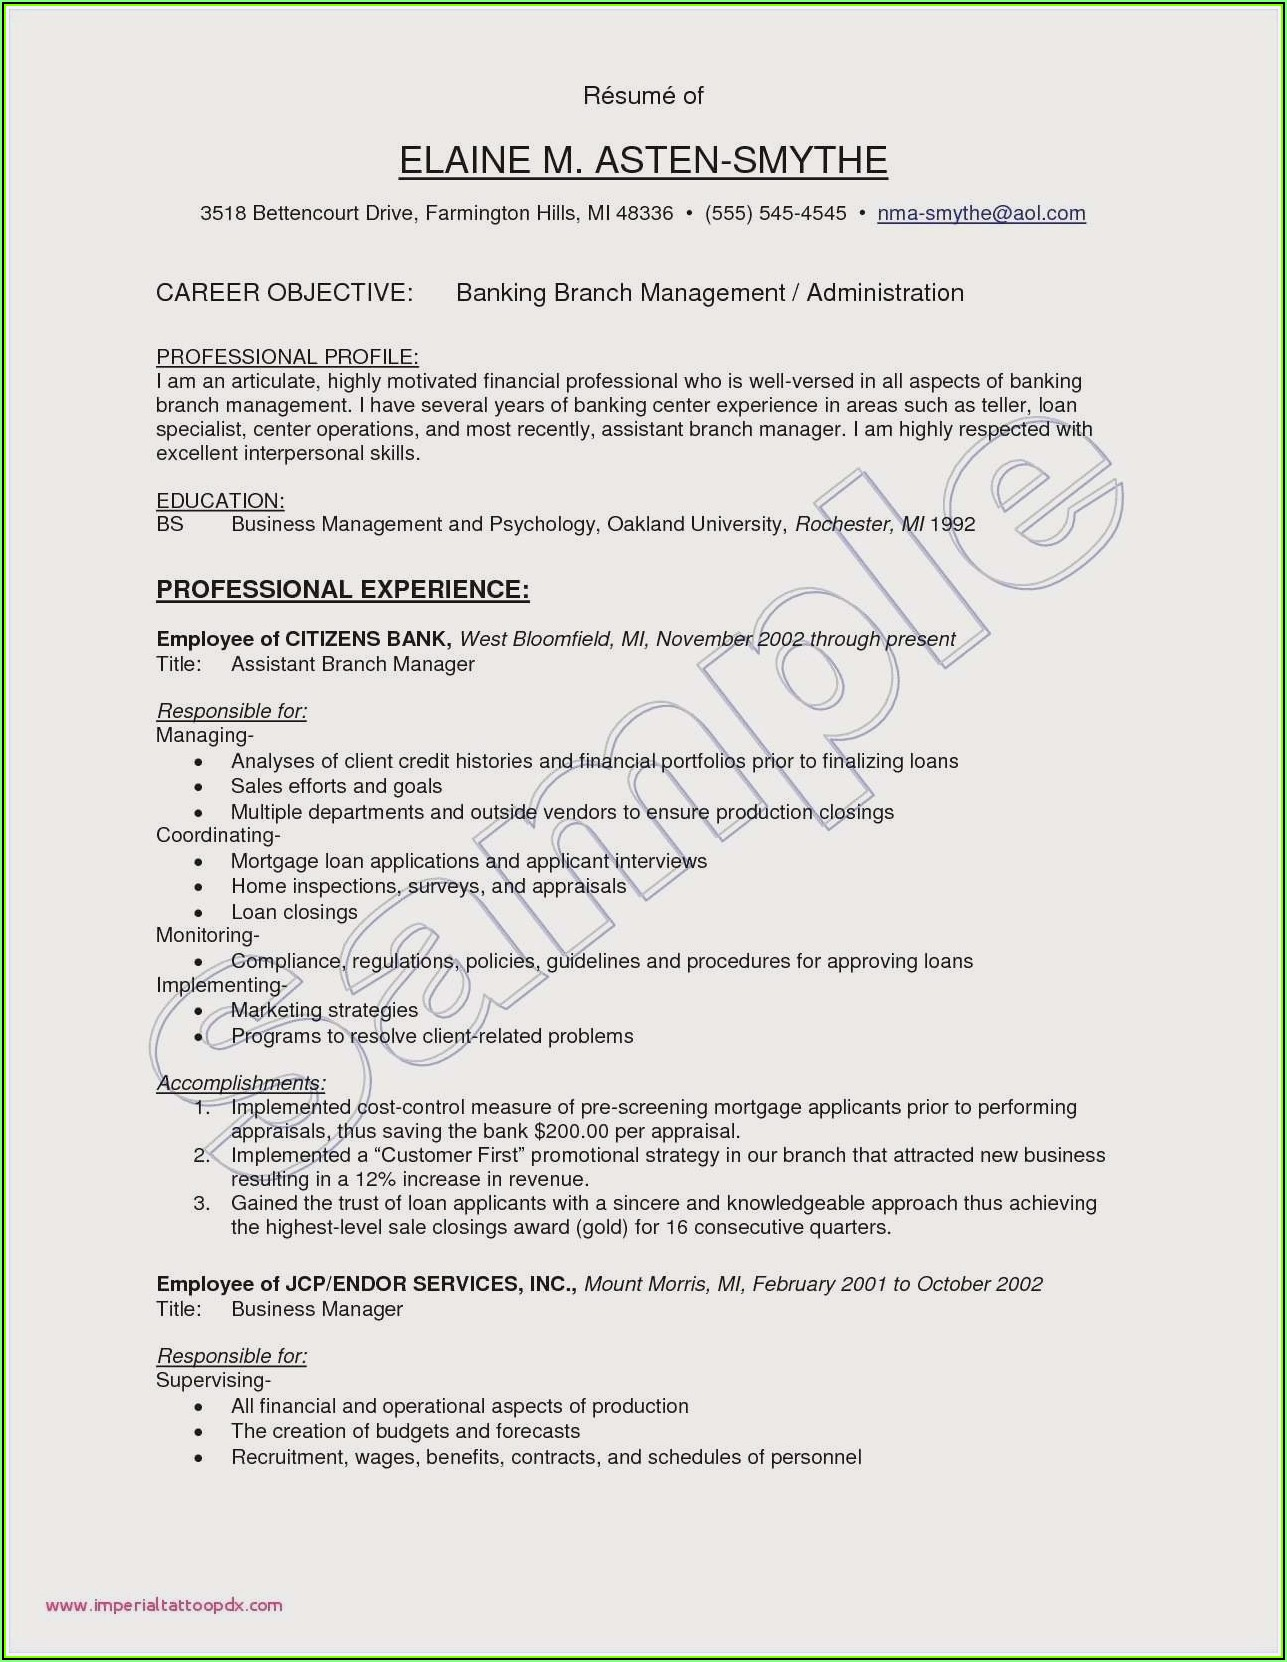 Resume Samples For Experienced Kpo Professionals